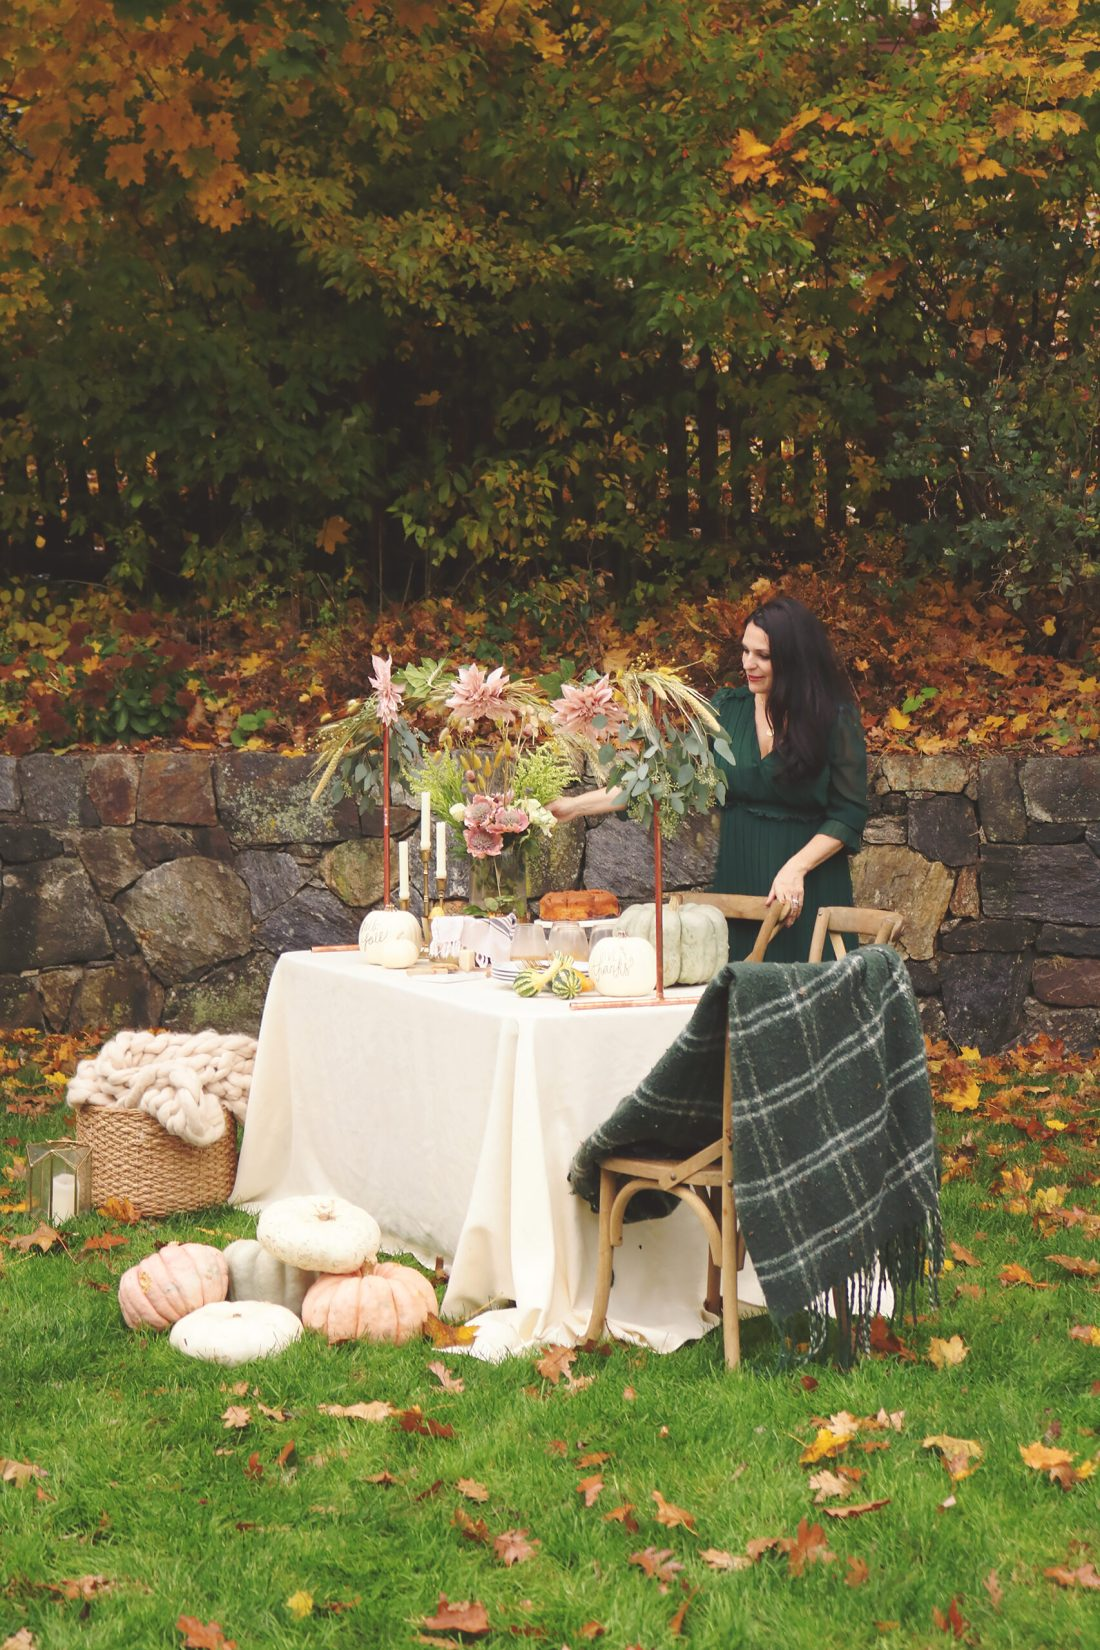 Outdoor Thanksgiving Table plus an easy DIY Over-The-Table Floral Rod to Make Your Thanksgiving Table a Feast to Remember and to use for all your festive holidays.  || Darling Darleen Top Lifestyle CT Blogger #thanksgivingtable #thanksgiving #darlingdarleen